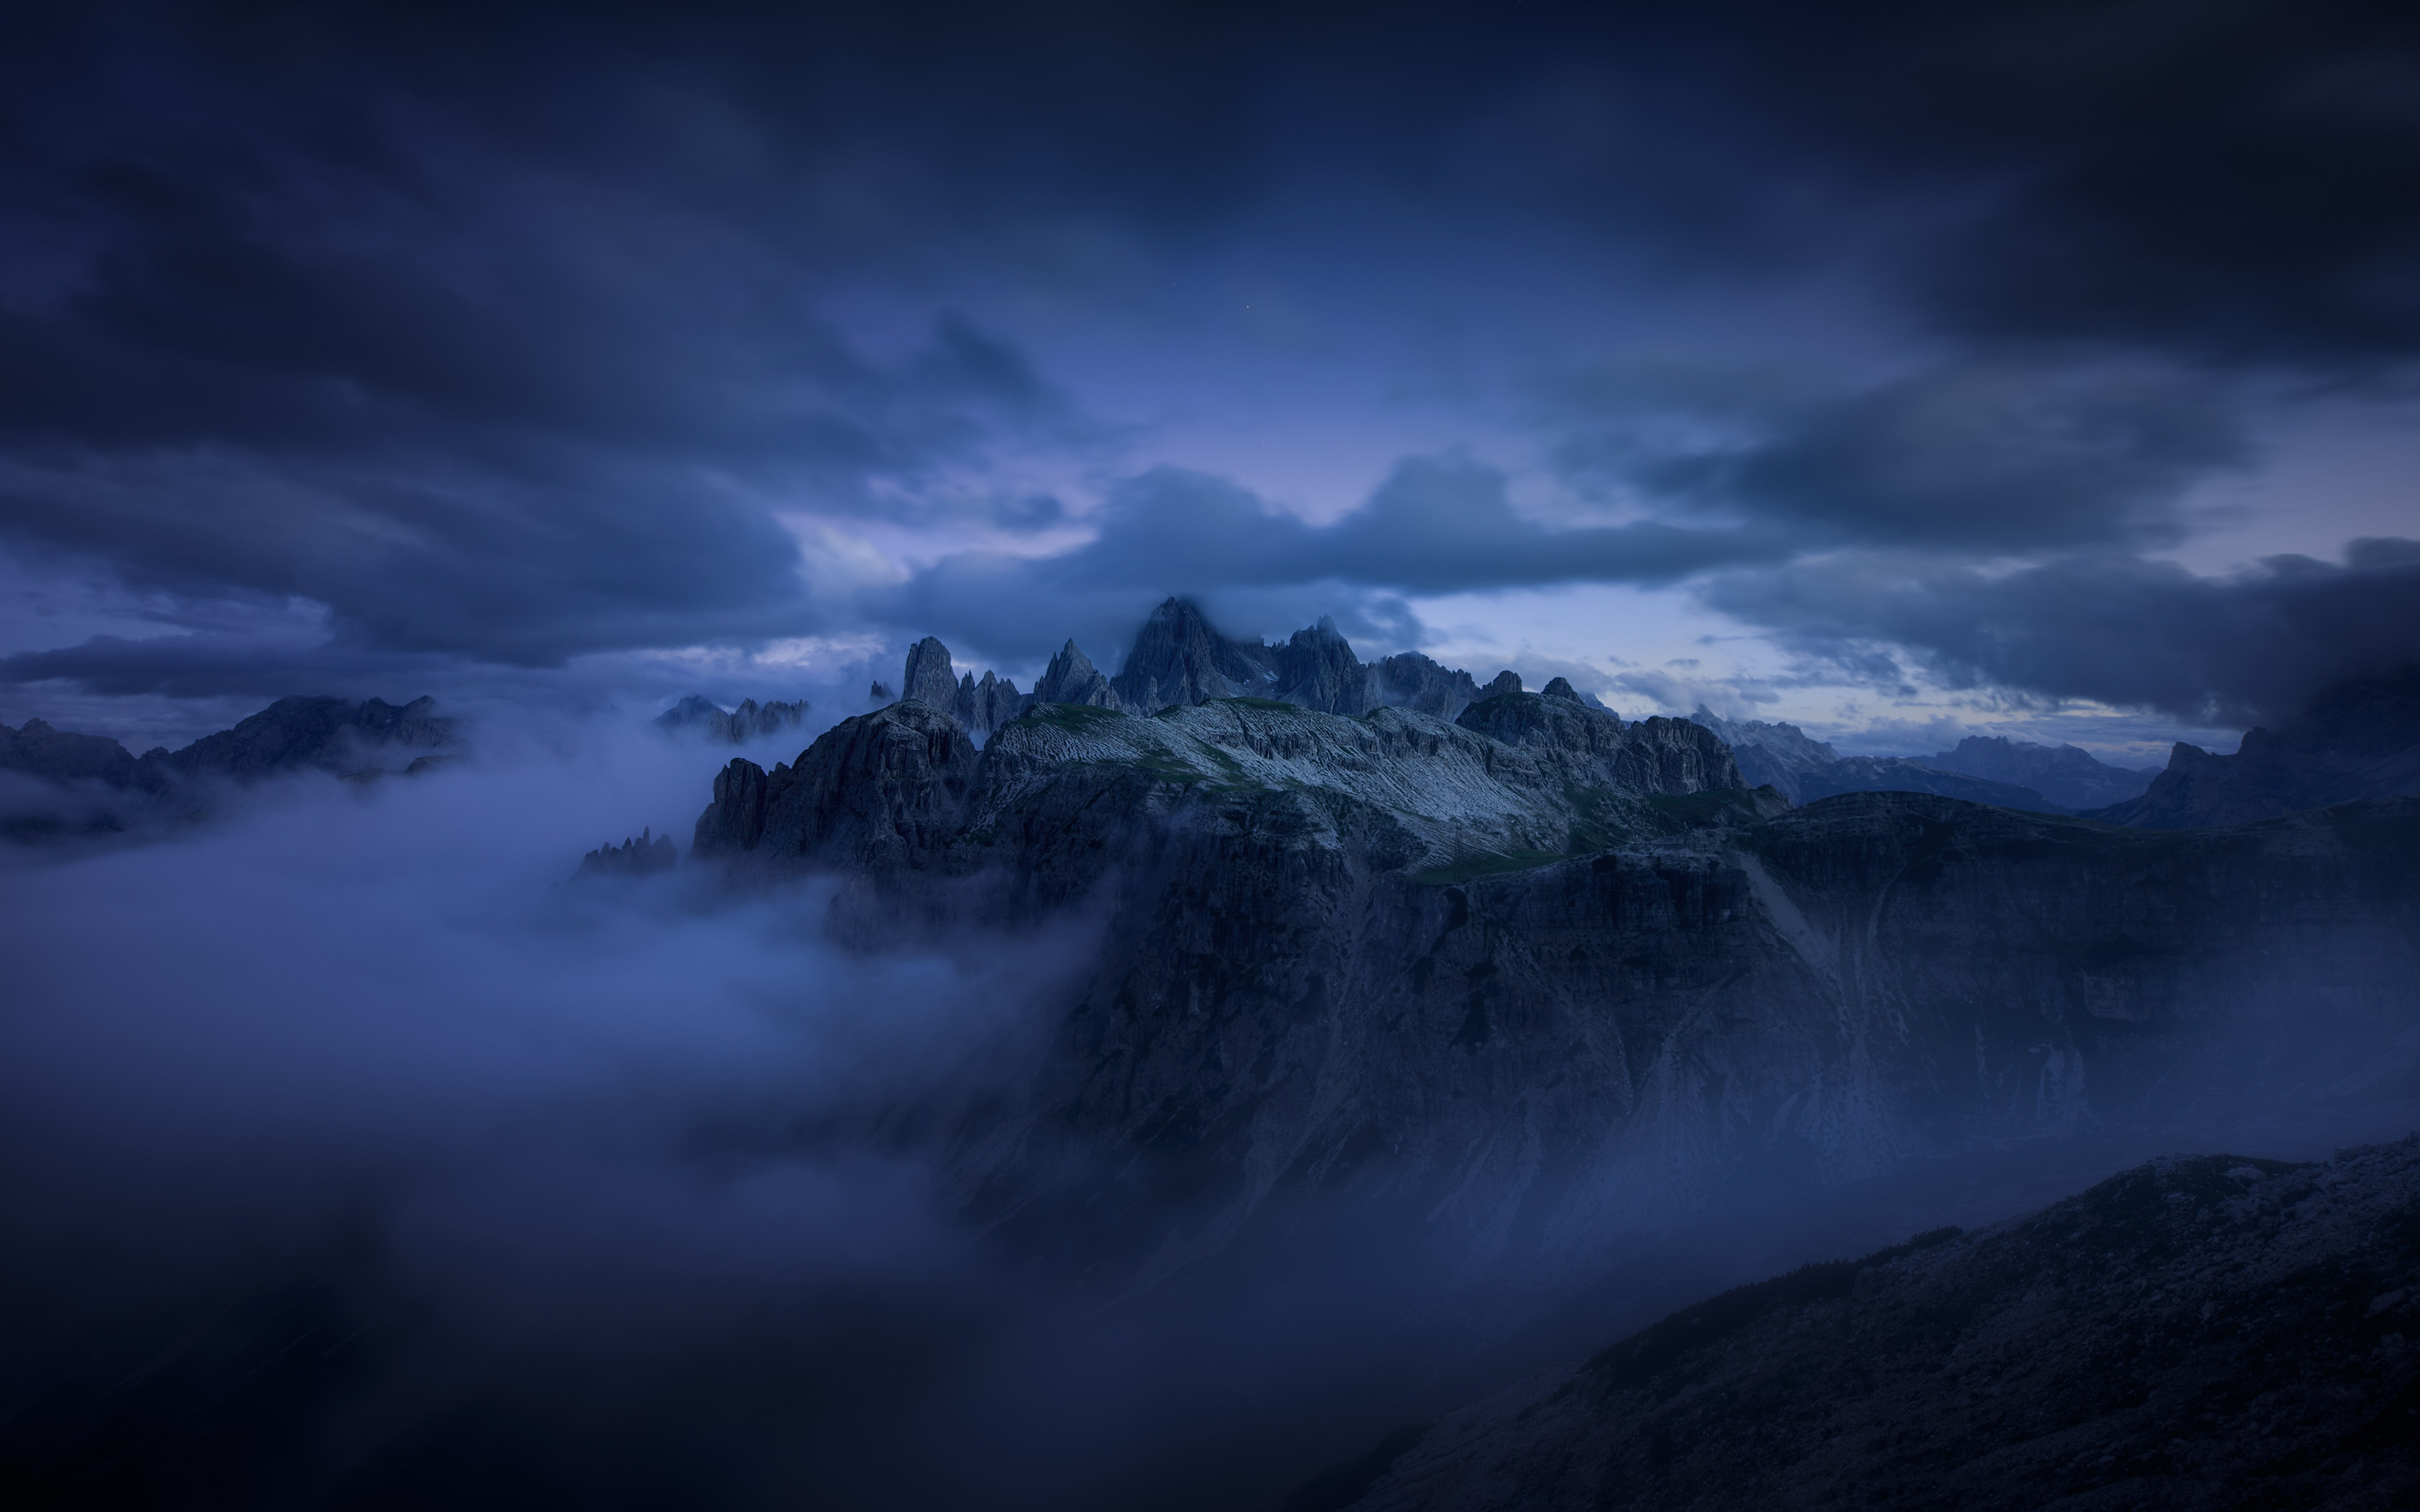 Dark Clouds over the Mountains 4k Ultra HD Wallpaper Background 3840x2400